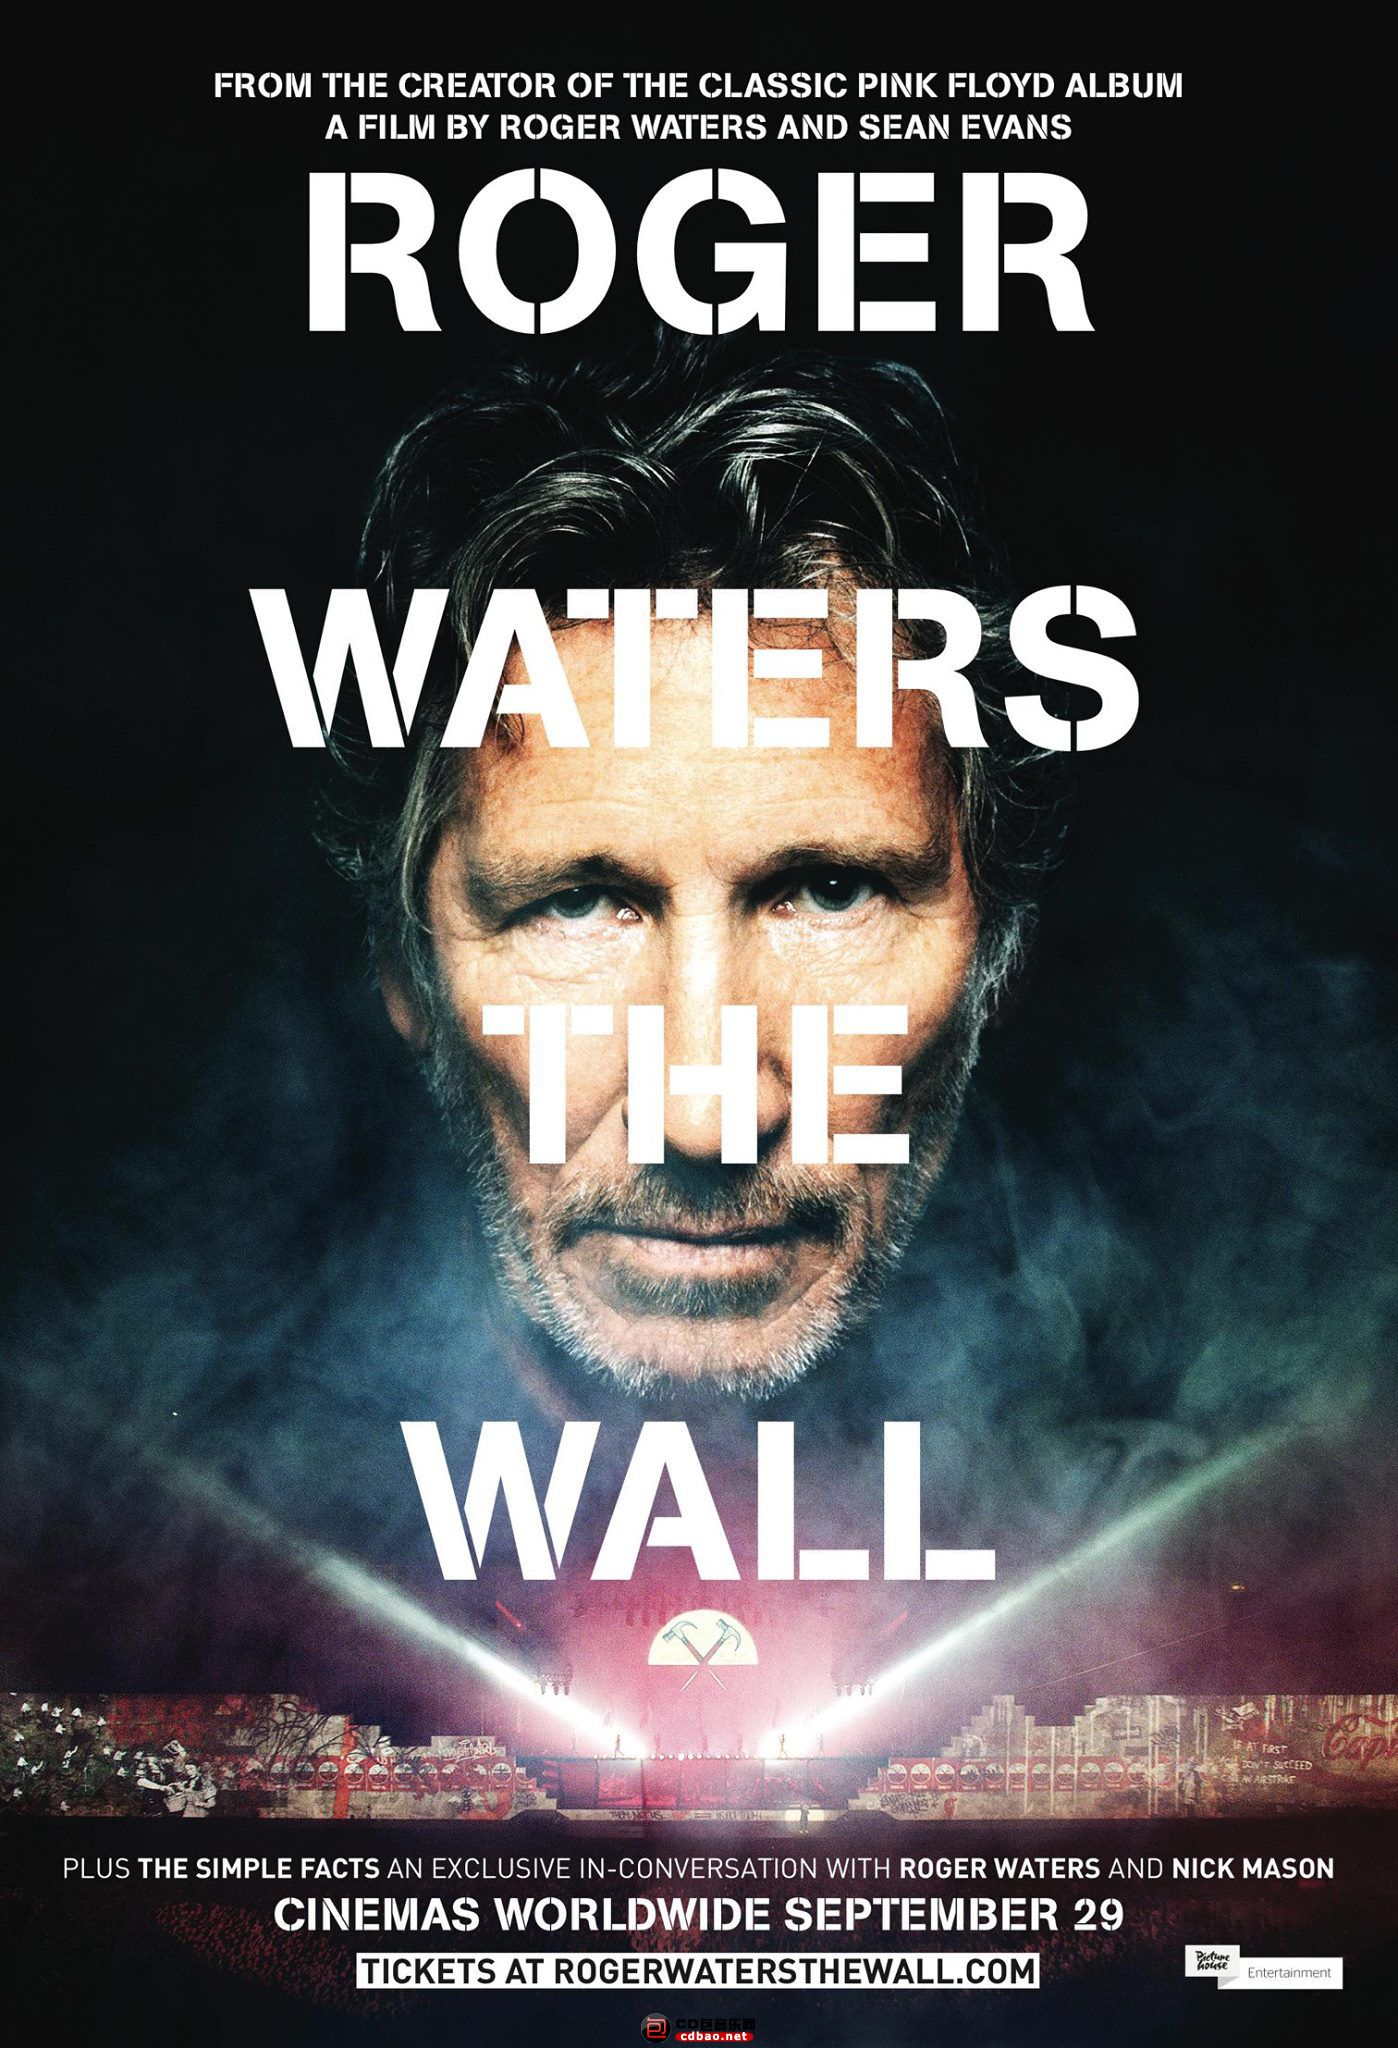 Roger-Waters-The-Wall-Film-2015.jpg